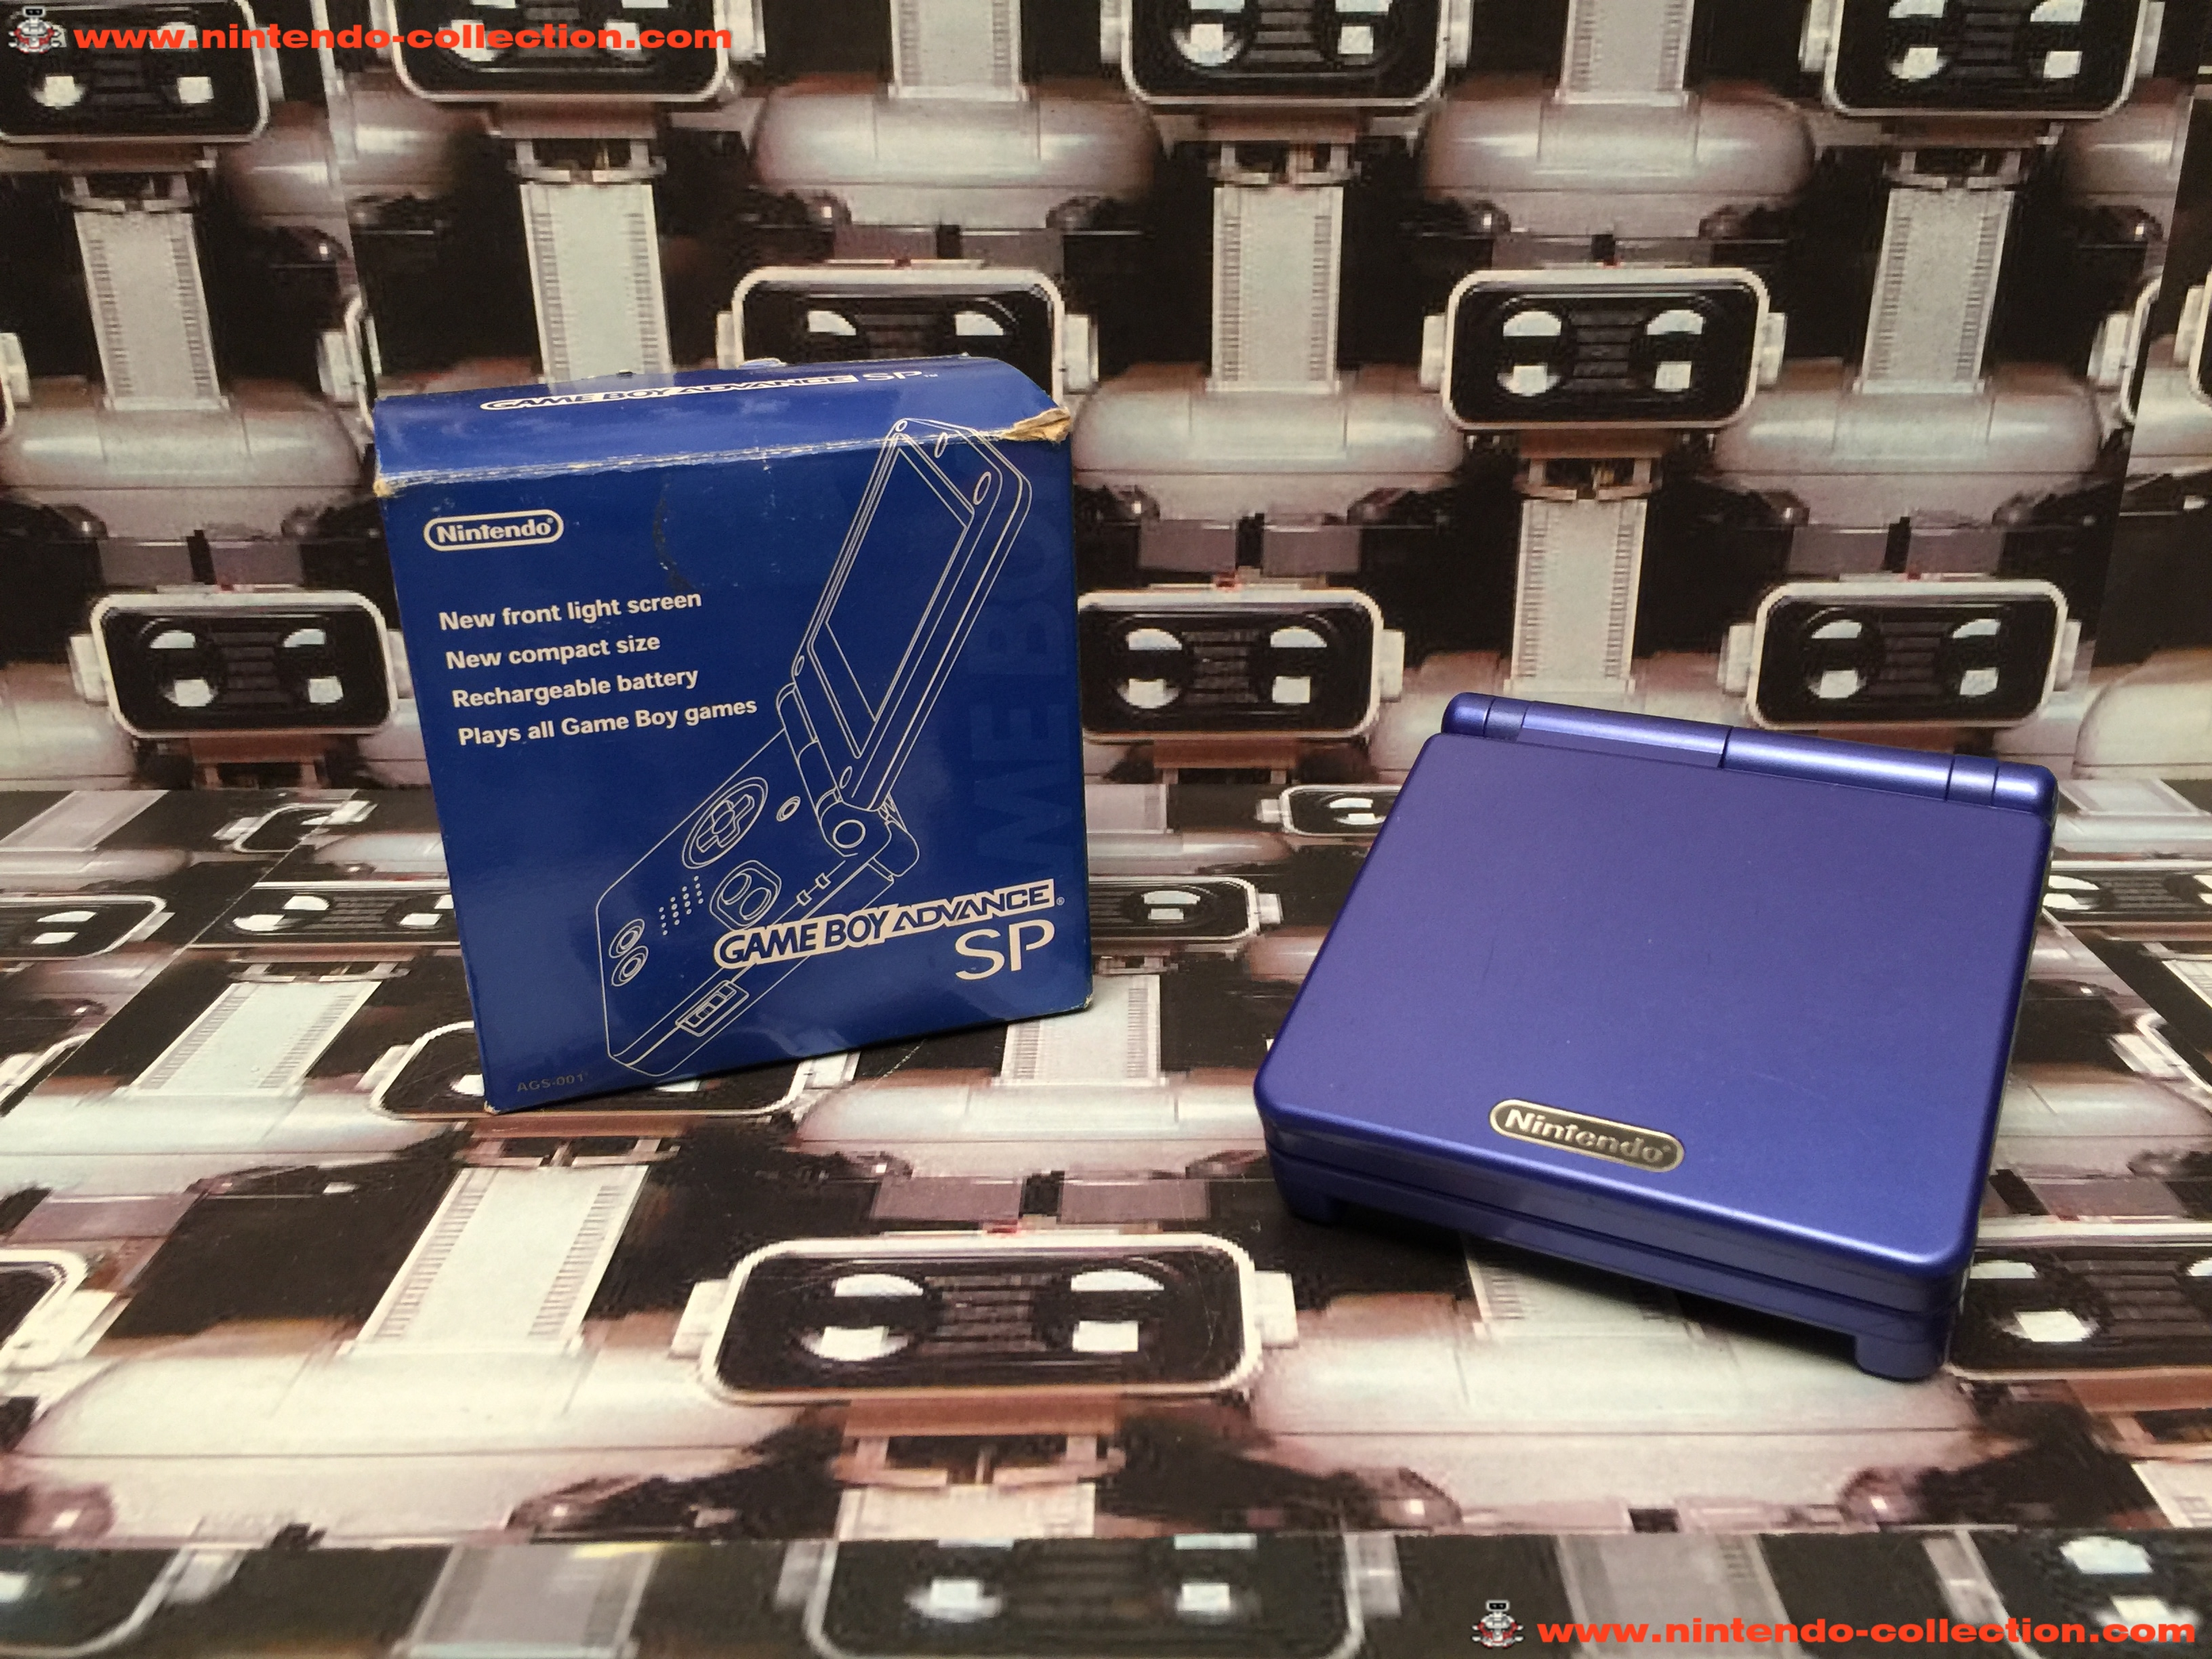 www.nintendo-collection.com - Gameboy Advance GBA SP Blue Bleu Edition Japan Japanese Japonaise vers